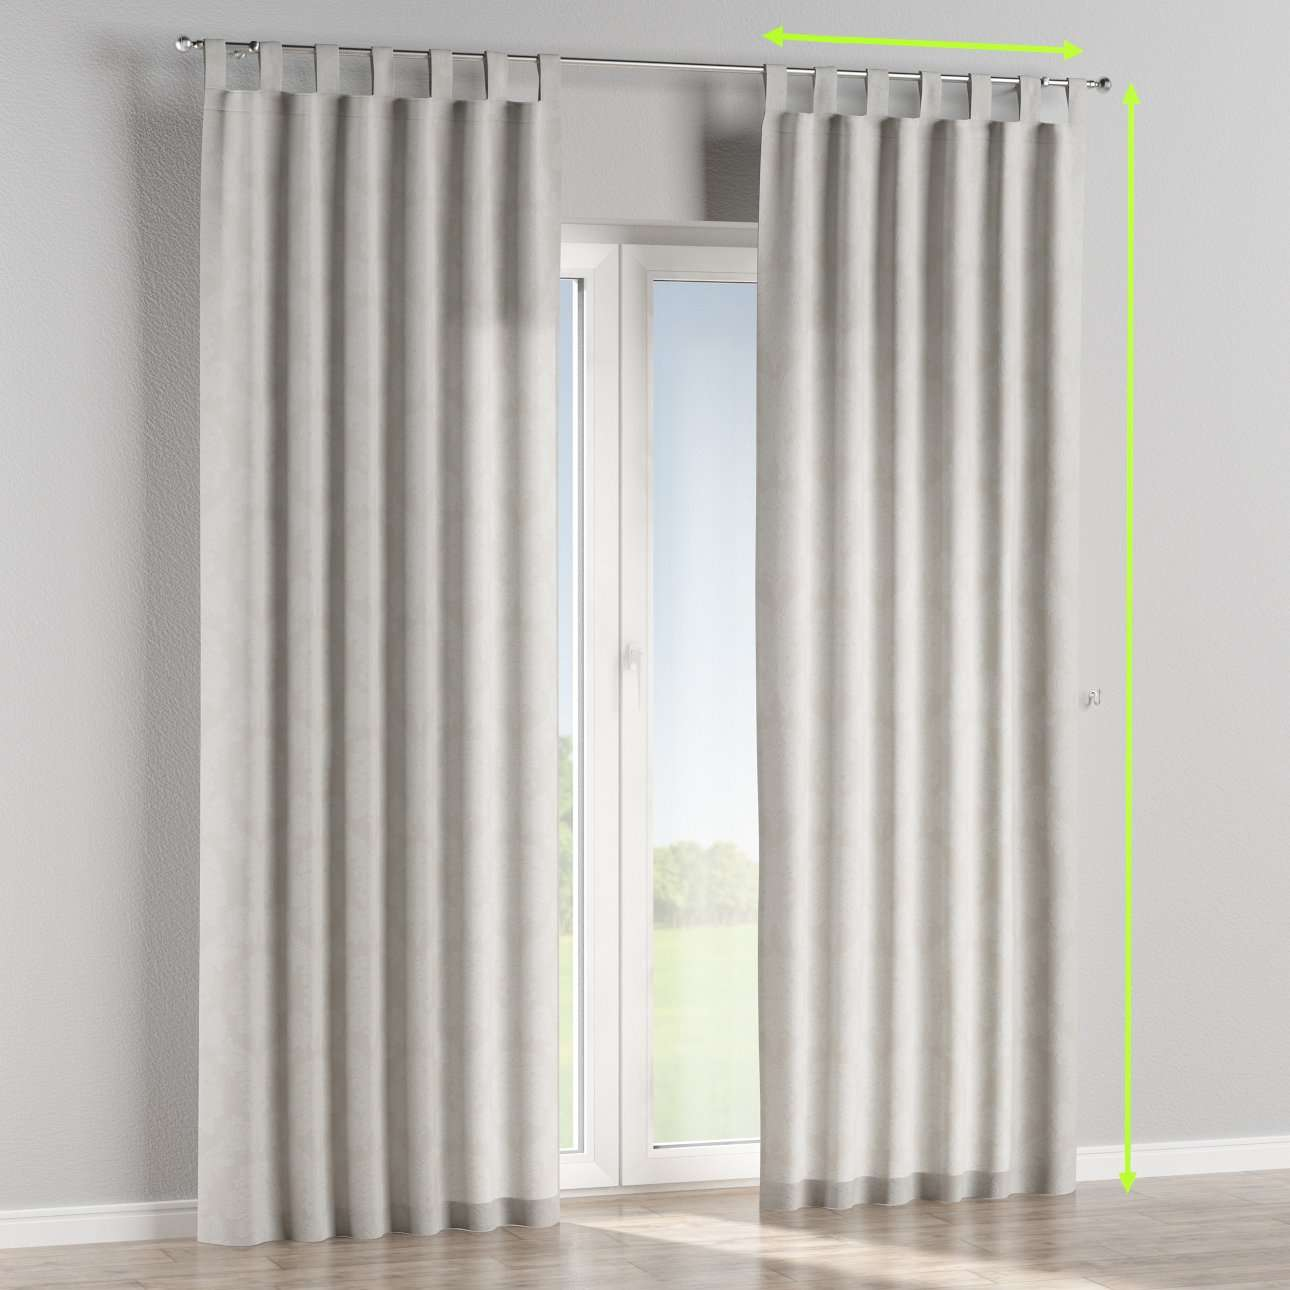 Tab top lined curtains in collection Damasco, fabric: 613-81